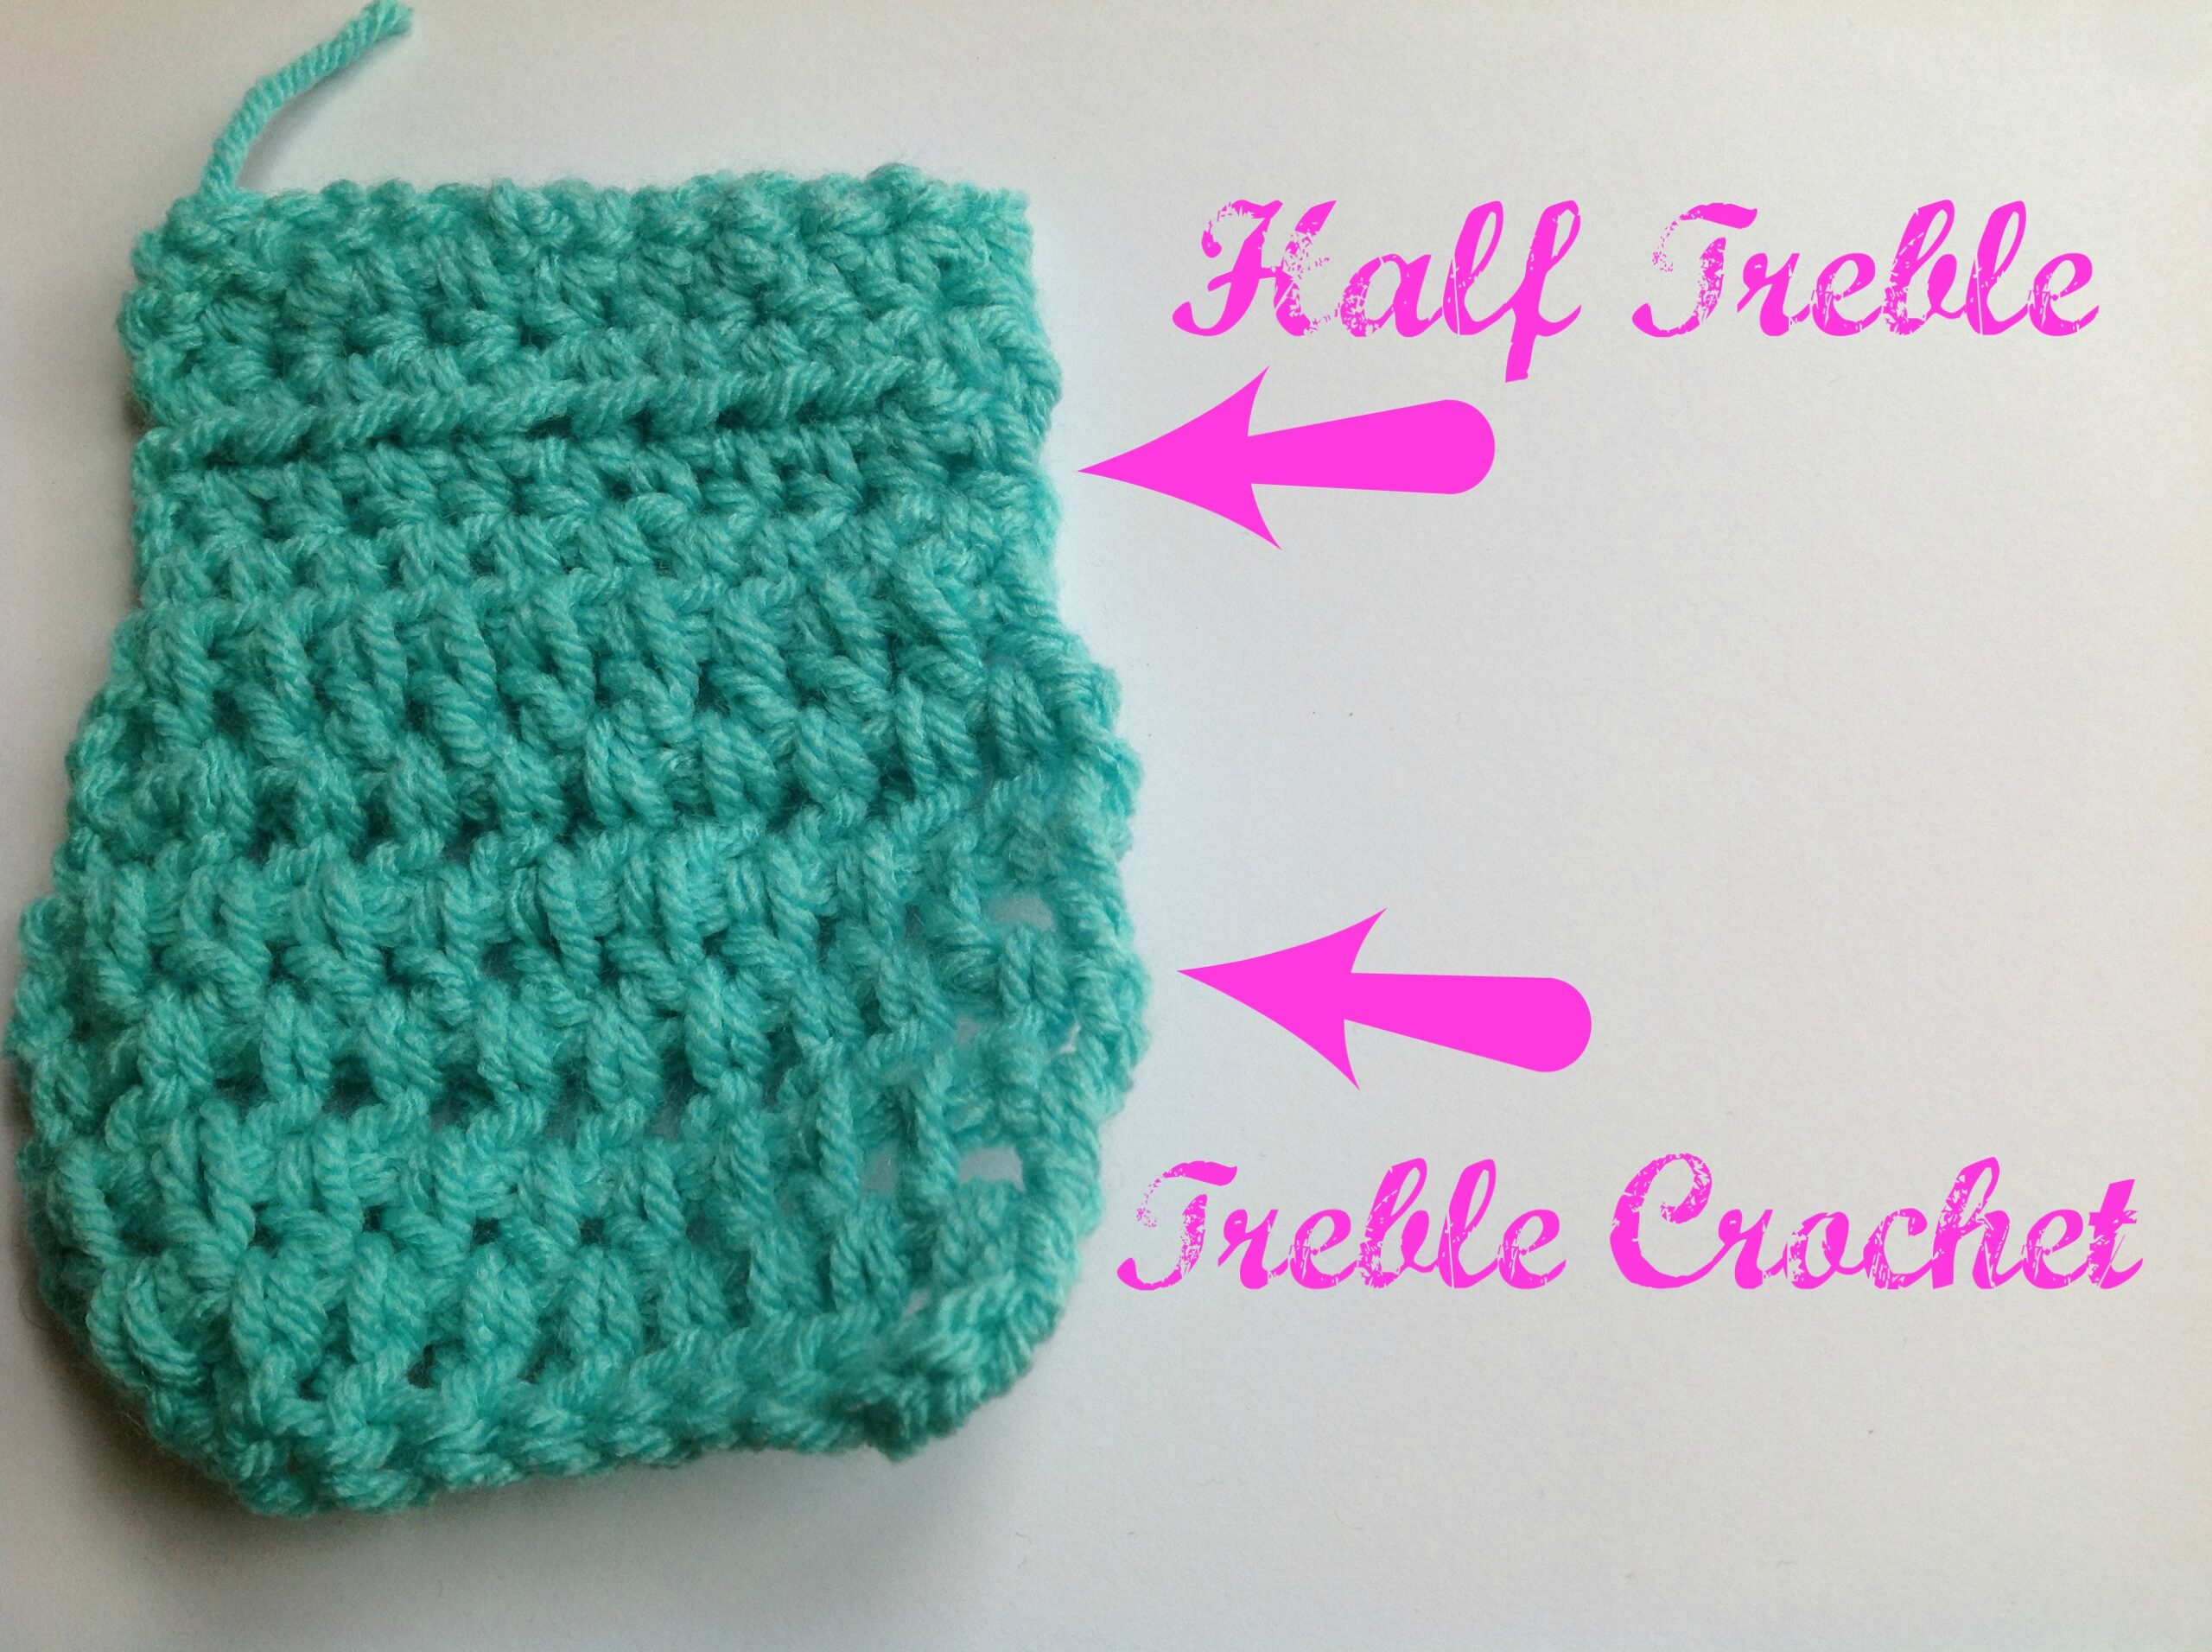 Crochet Stitches Uk Half Treble : Treble Crochet Stitch Treble And Treble Crochet